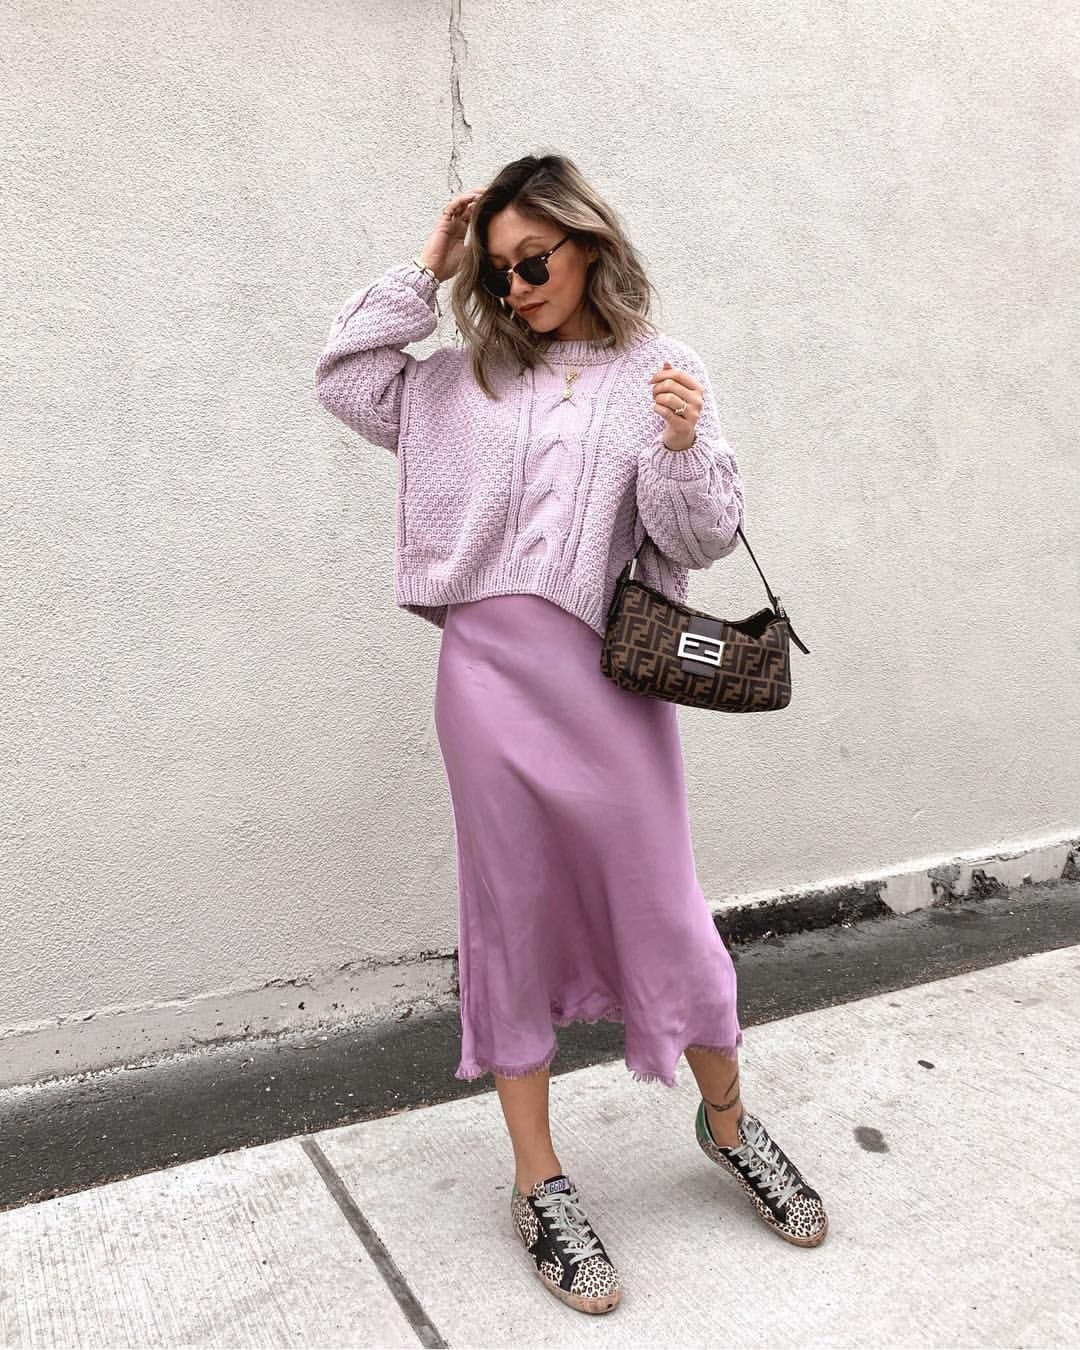 Slipdress with sneakers. Lilac outfit